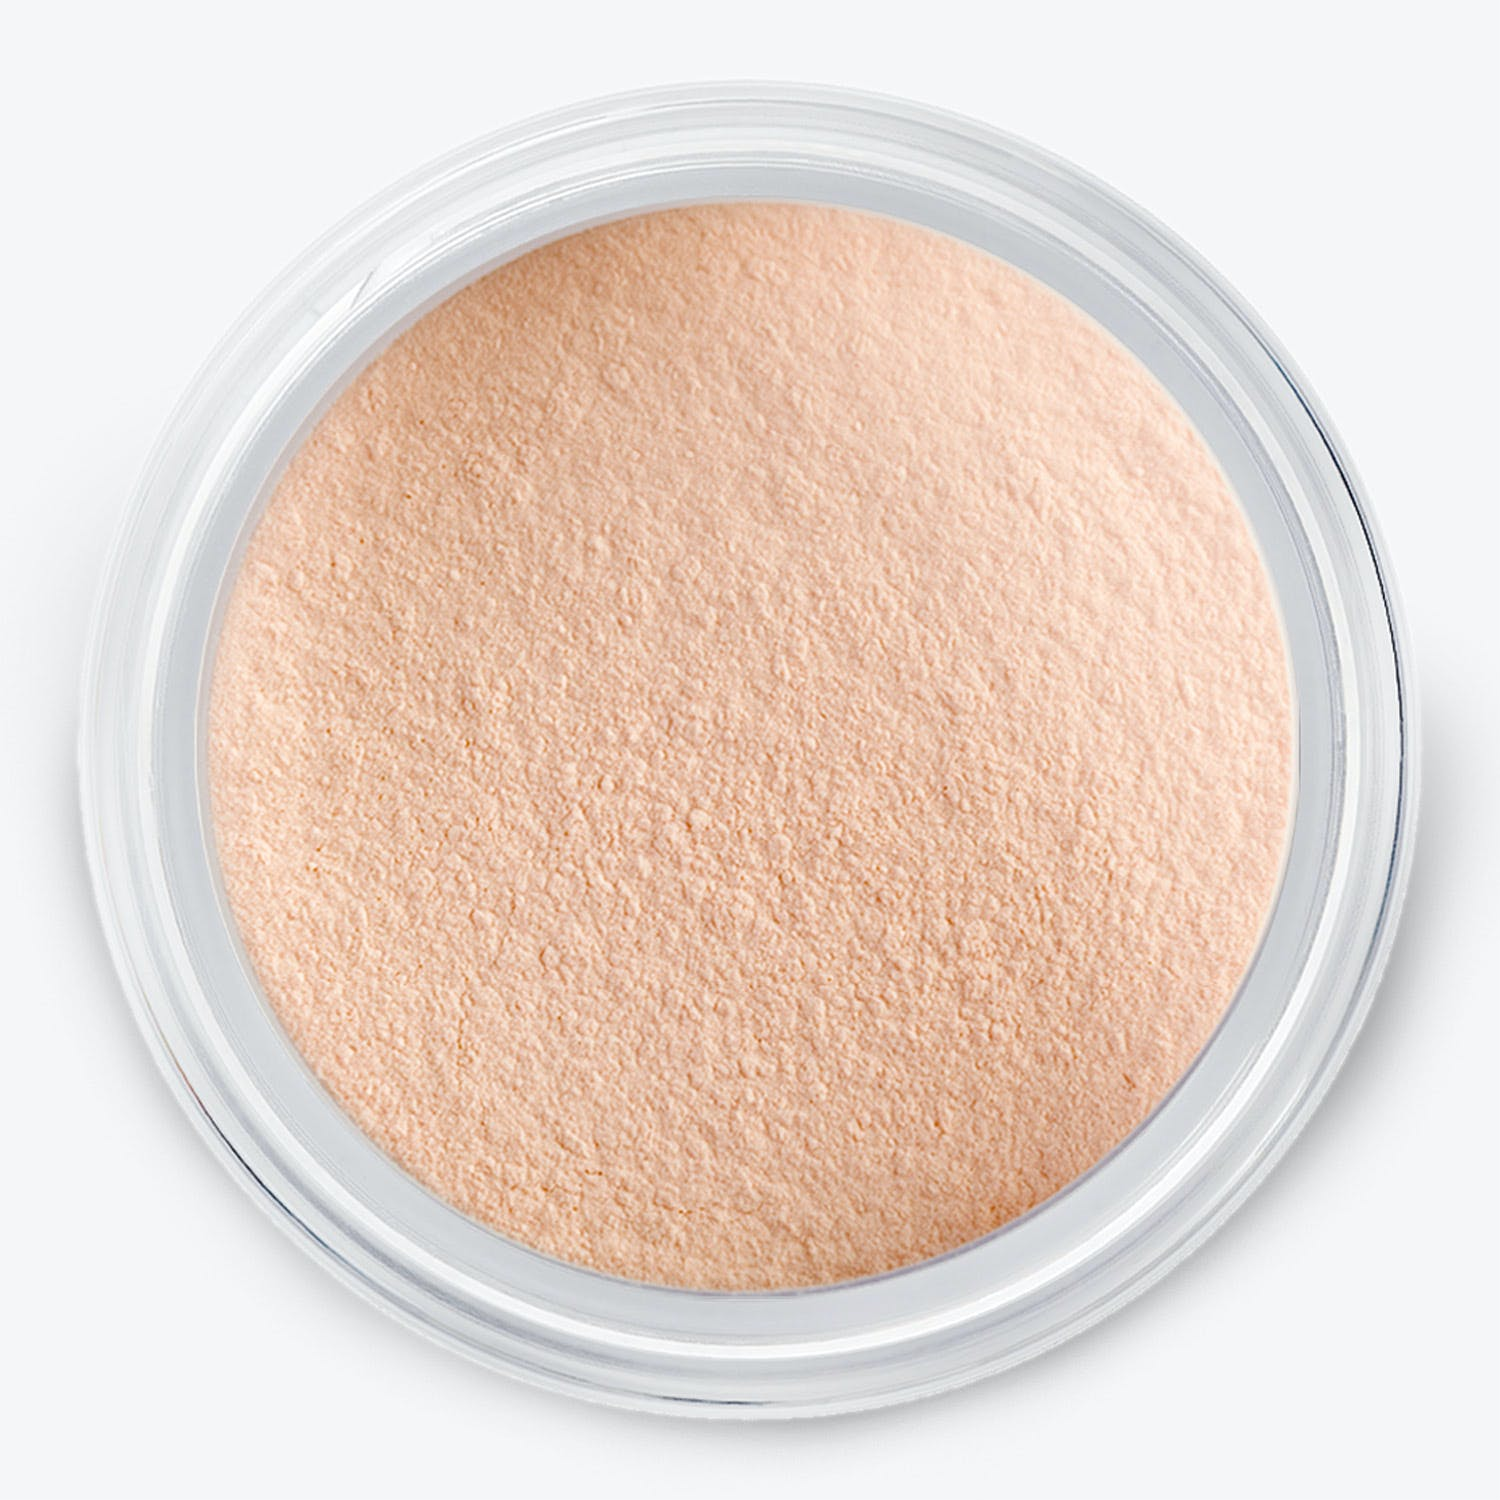 Product Image - Manasi 7 Silk Finish Powder Perihelion Golden Peachy Rose